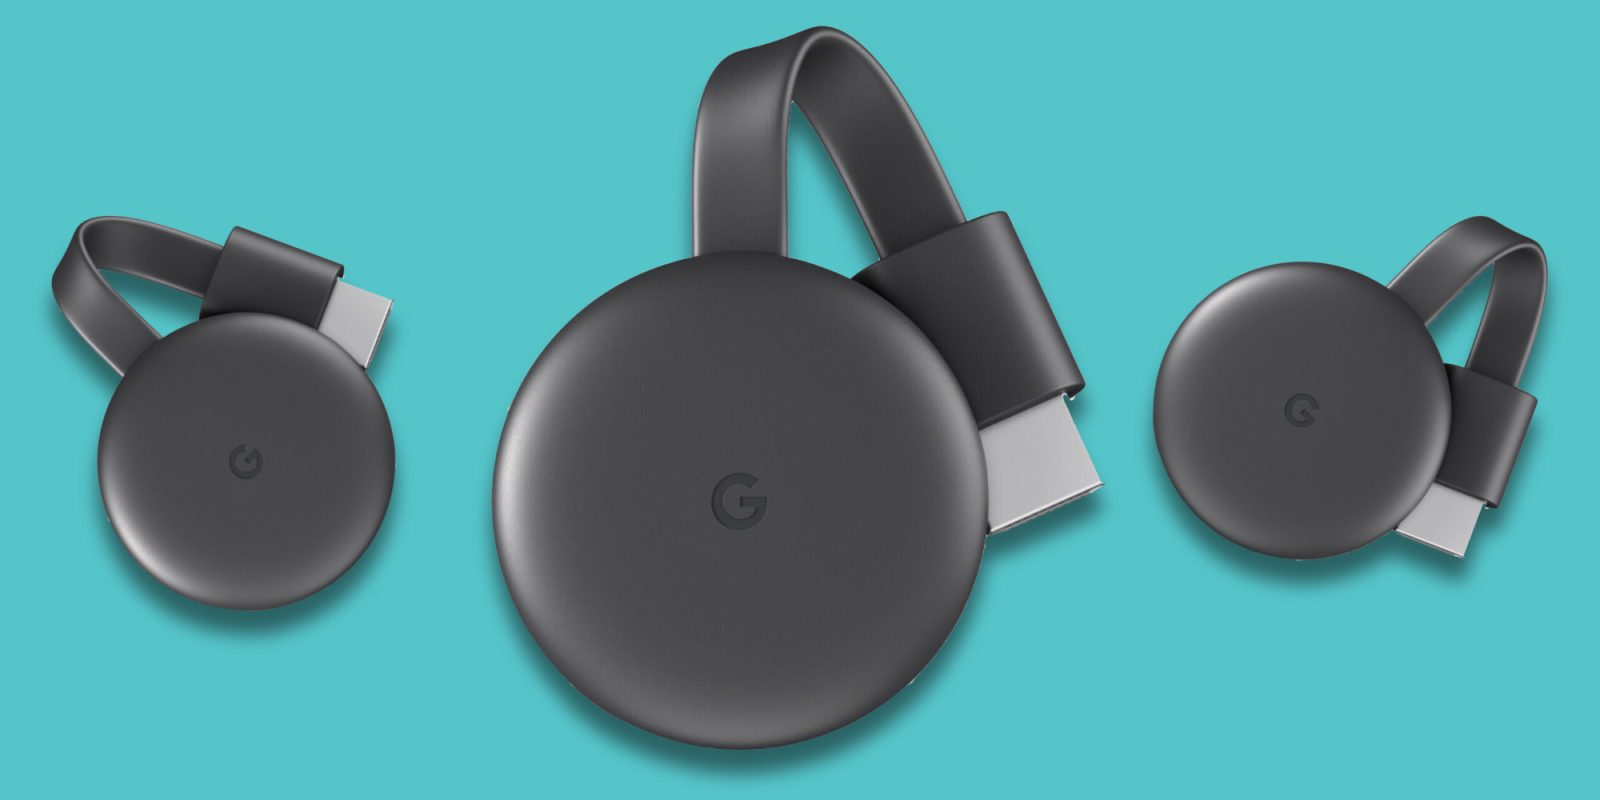 You can pick up Google Chromecast for $25 at eBay right now (Save 30%)